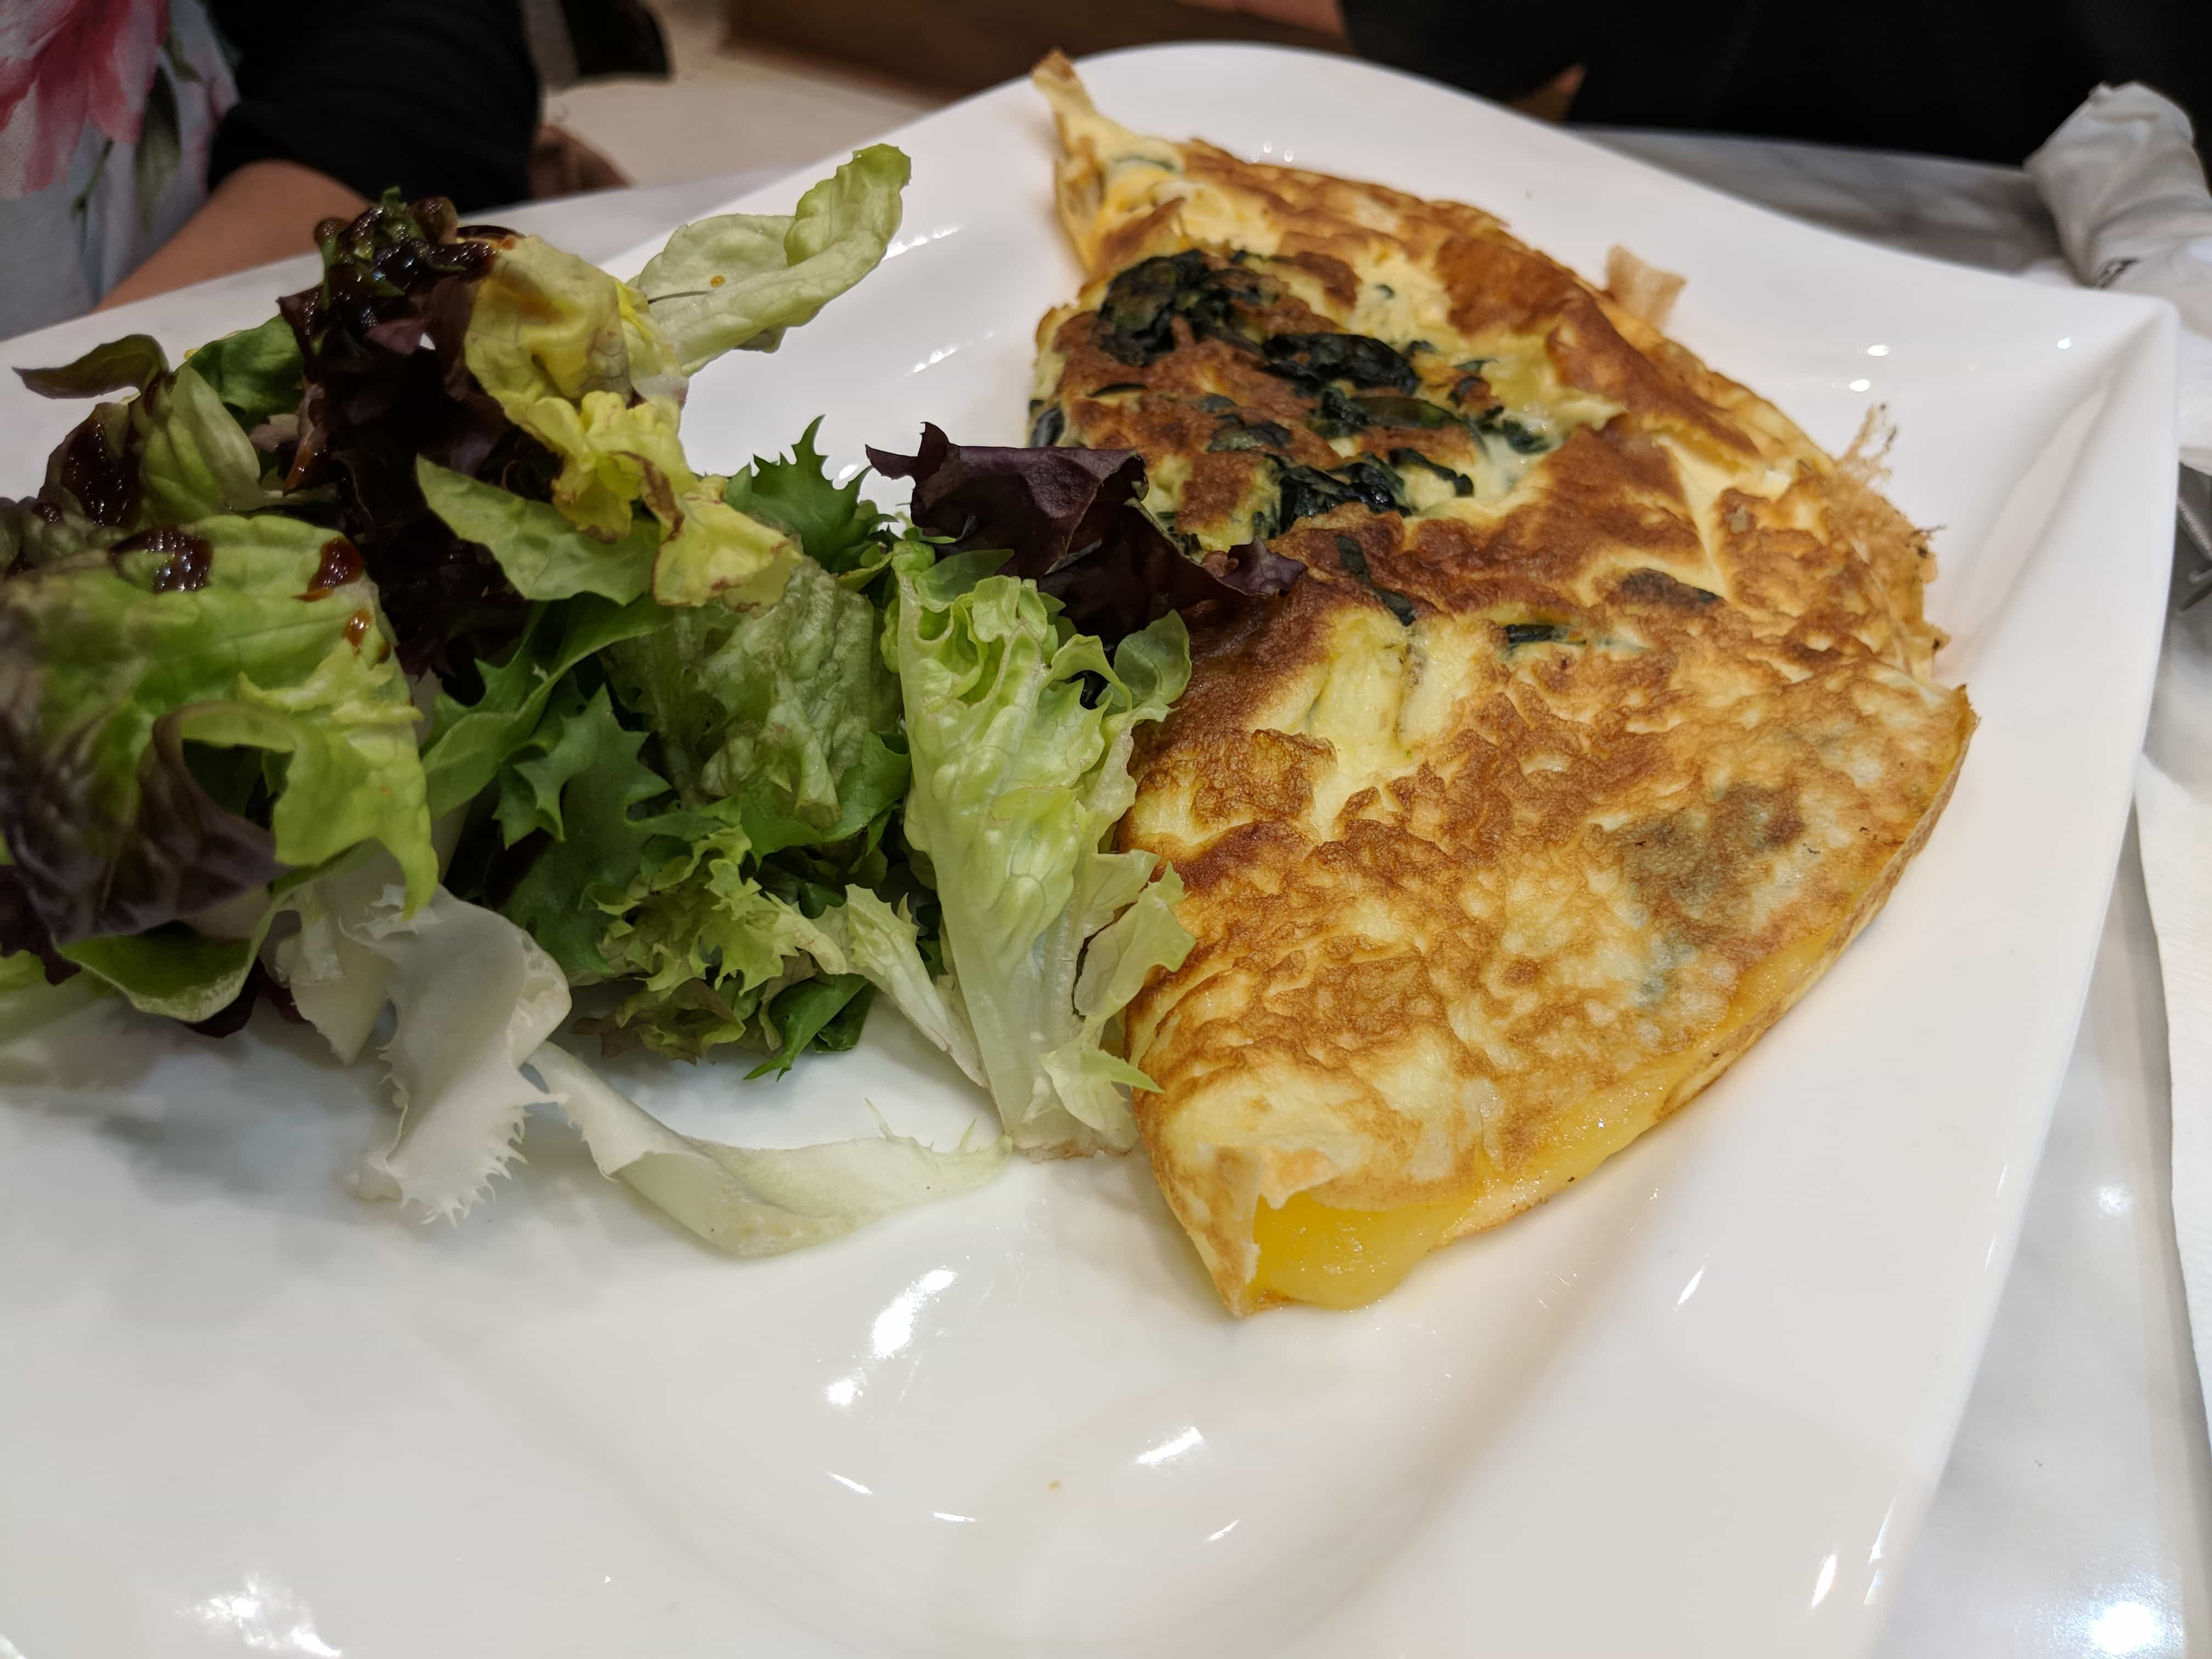 3 egg omelette with cheese & spinach